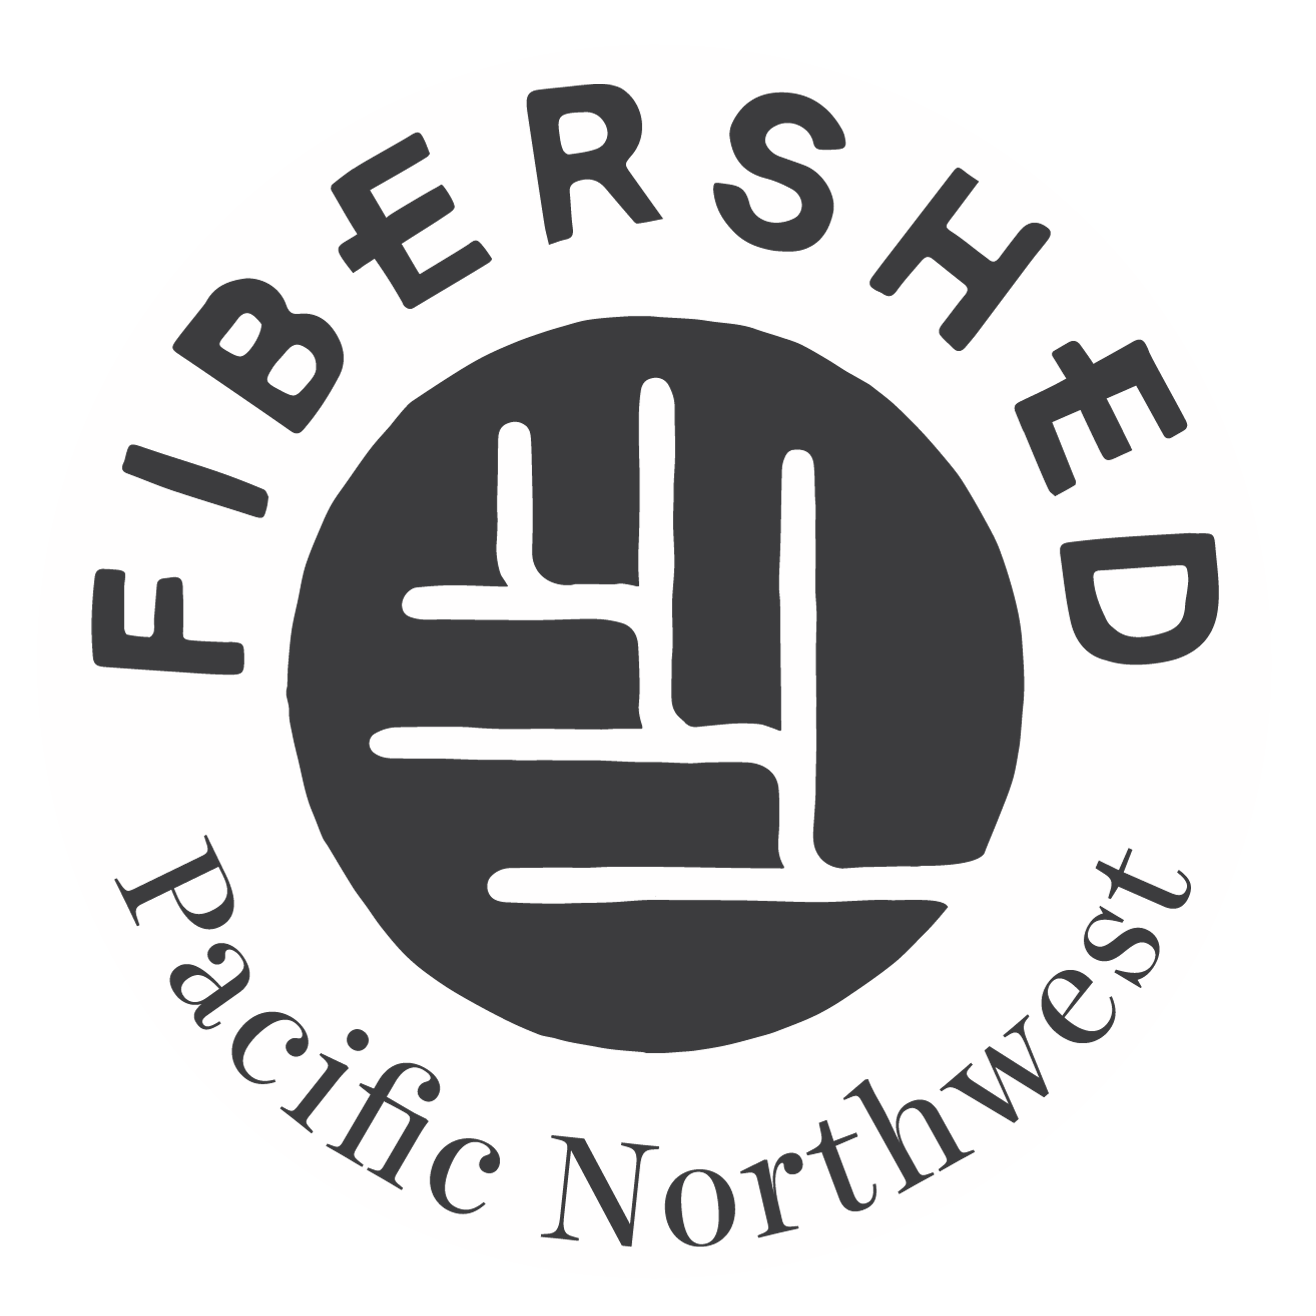 Pacific Northwest Fibershed